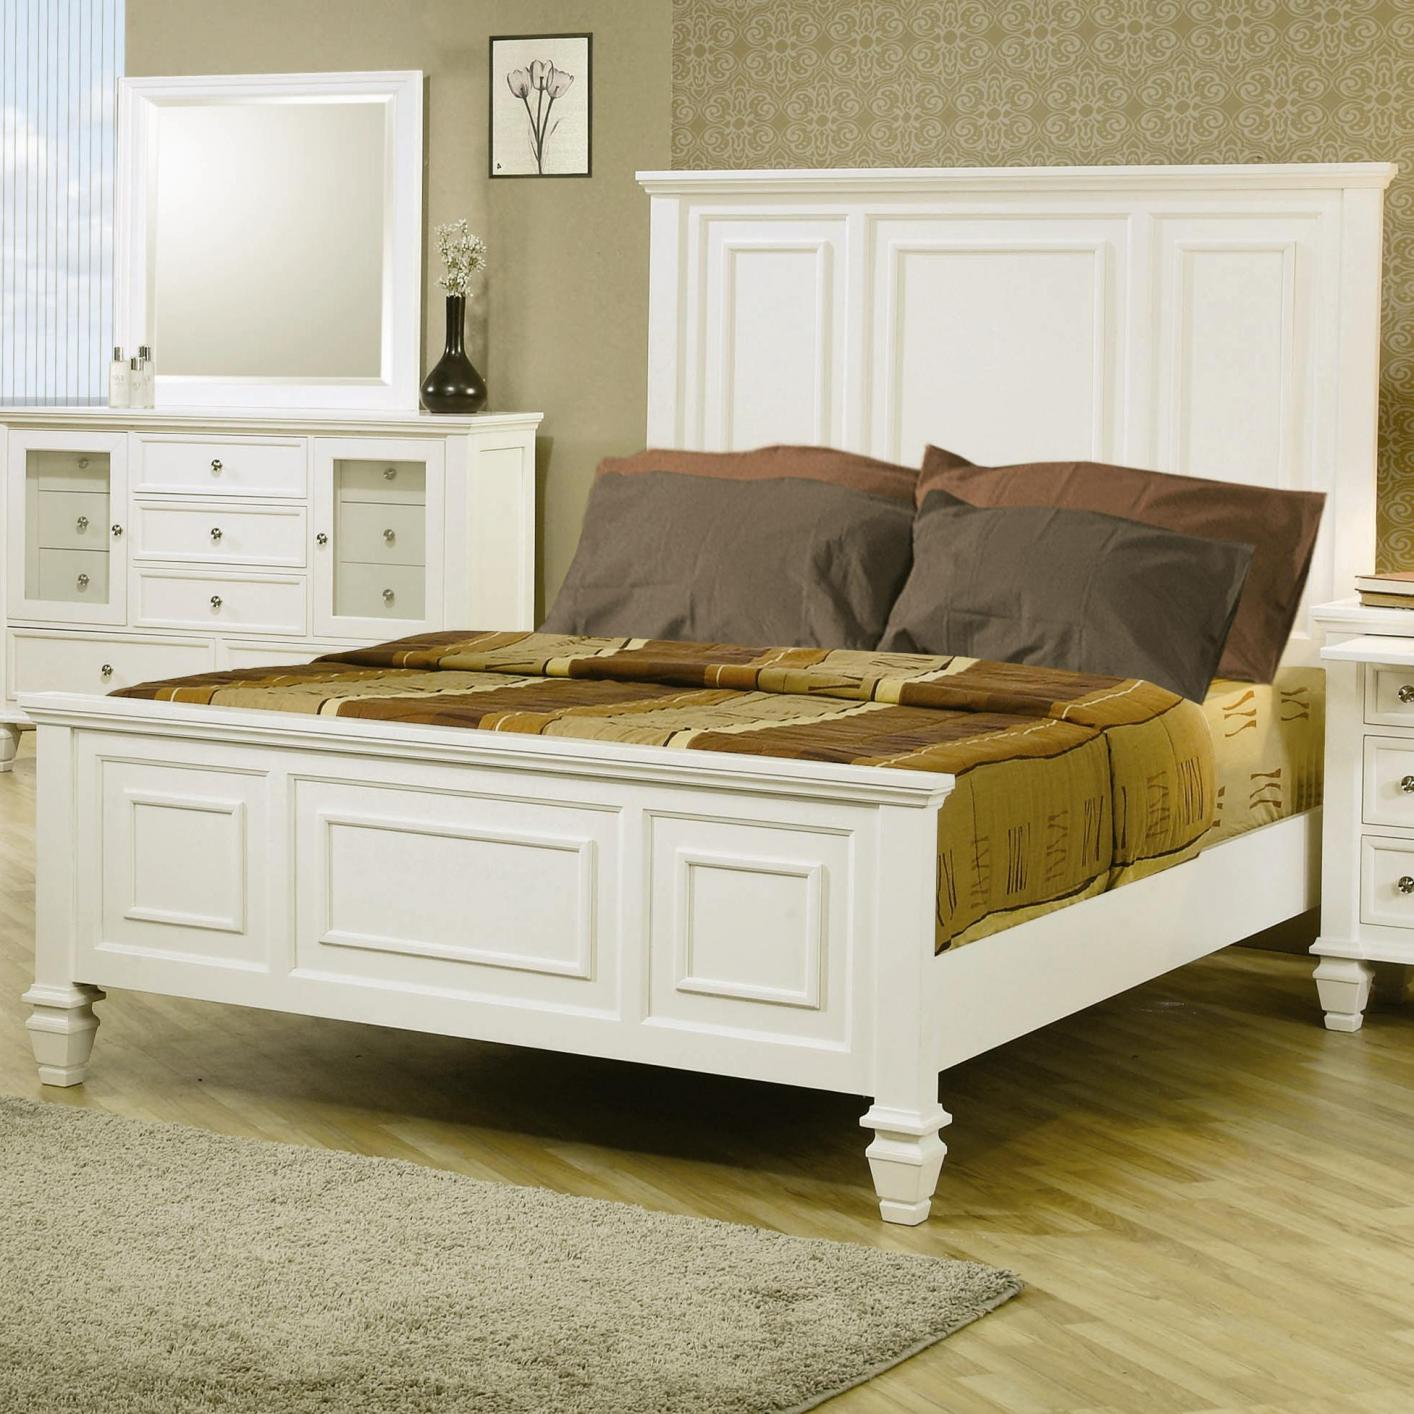 Coaster 201301Q White Wood Queen Size Bed Steal A Sofa Furniture